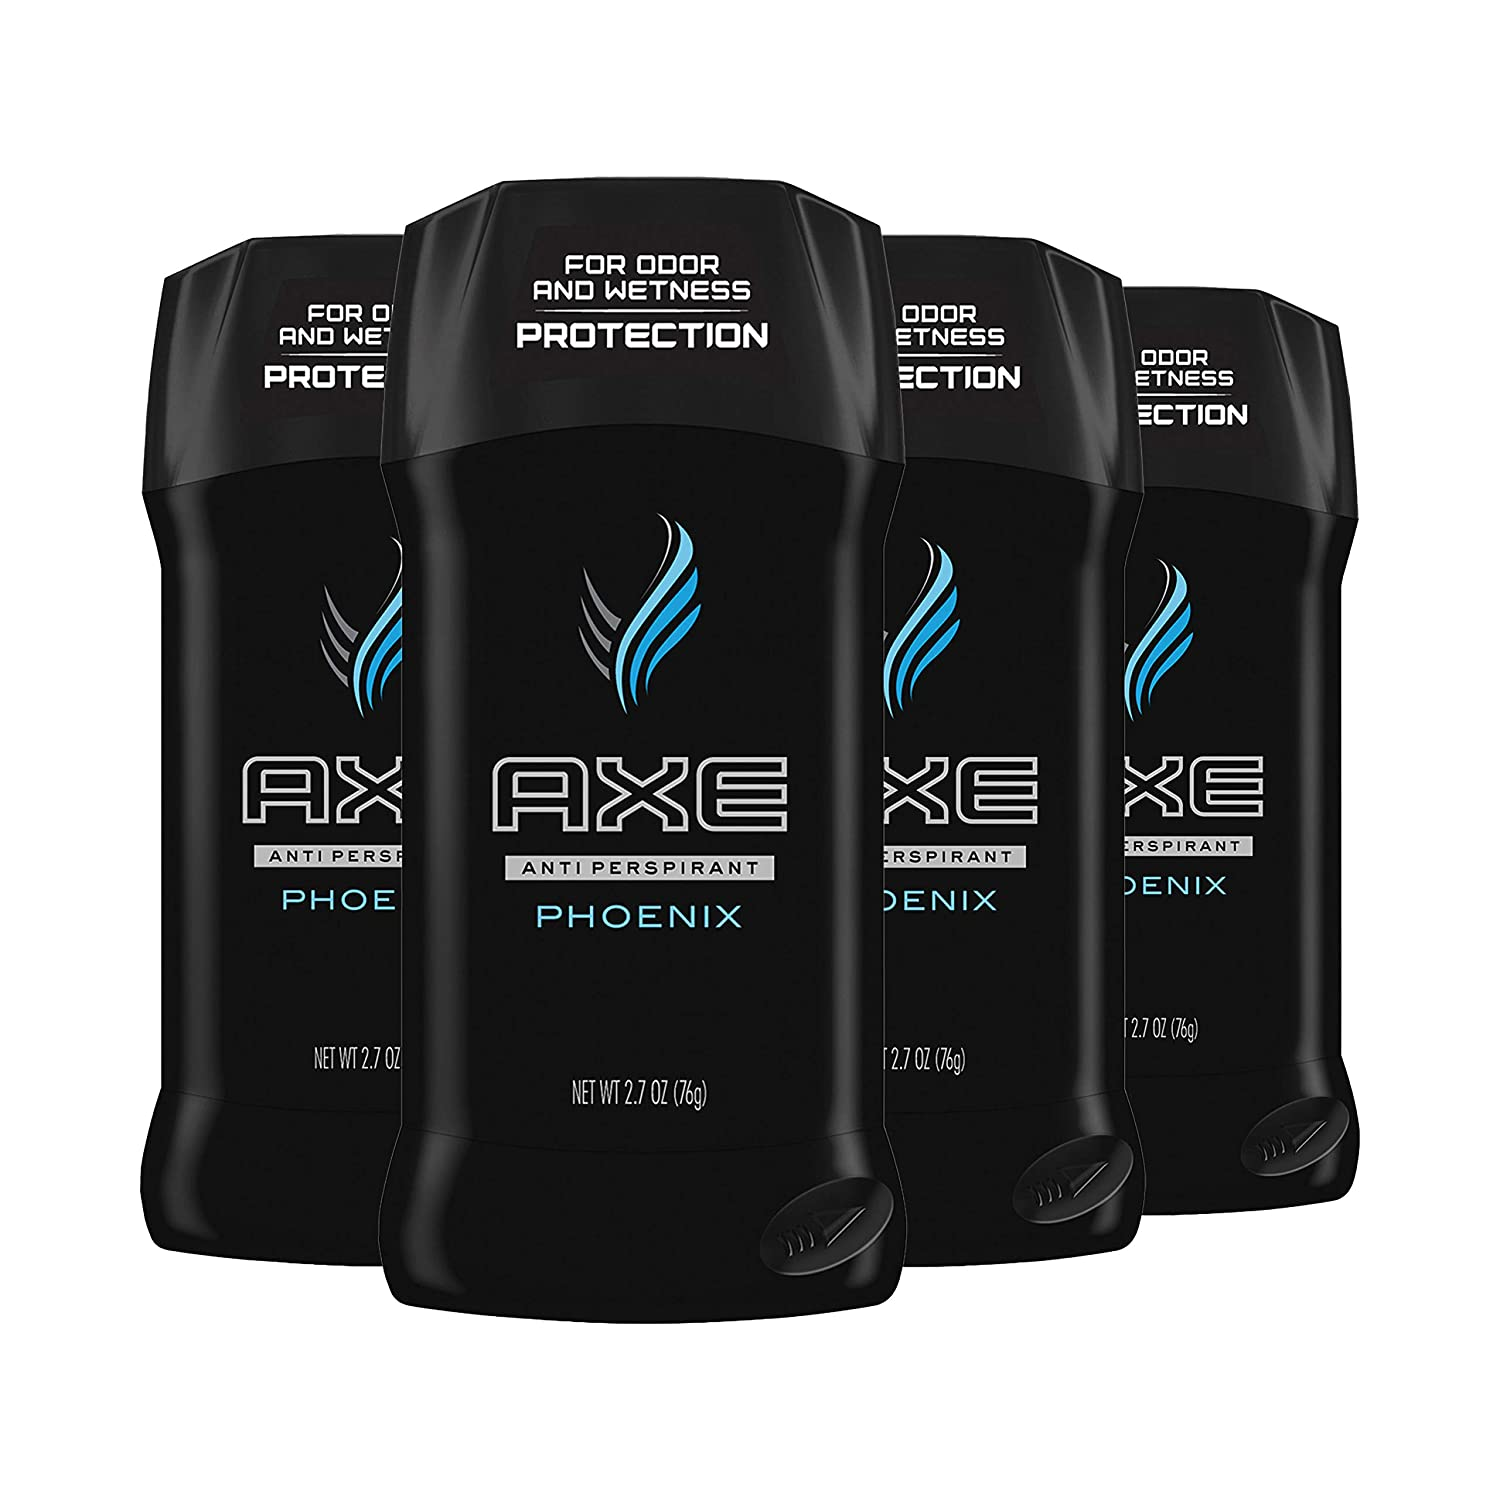 AXE Antiperspirant Deodorant 48 Hour Sweat and Odor Protection Phoenix Deodorant for Men 2.7 oz, 4 Count : Beauty